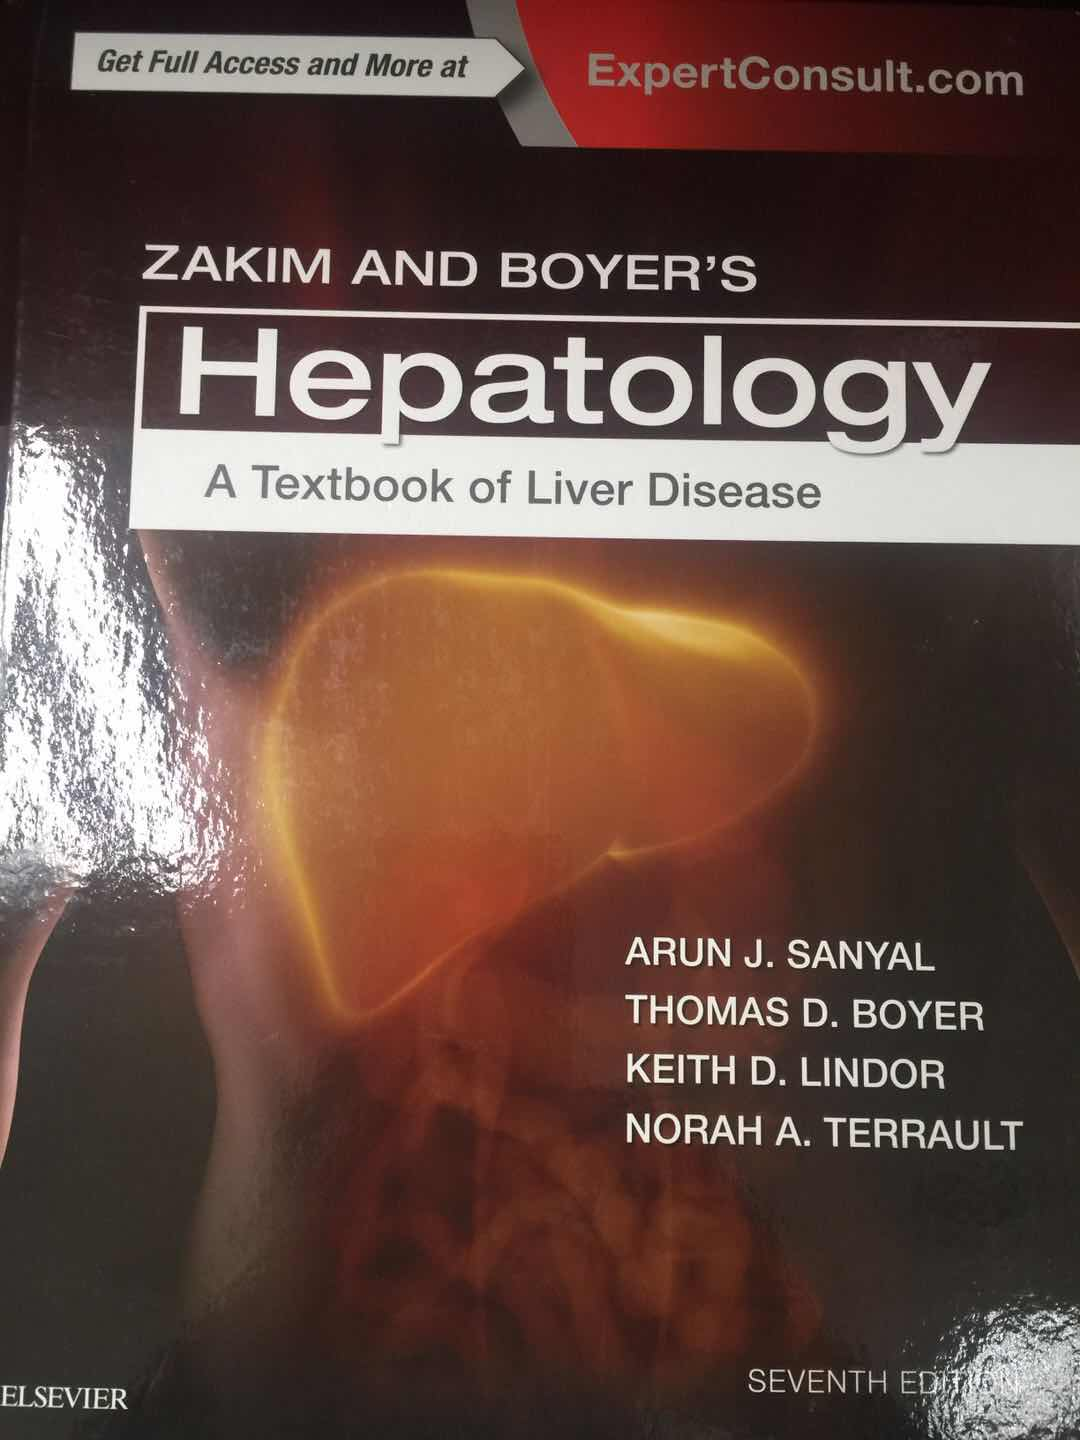 《Zakim and Boyer's Hepatology:A Textbook of Liver Disease 》